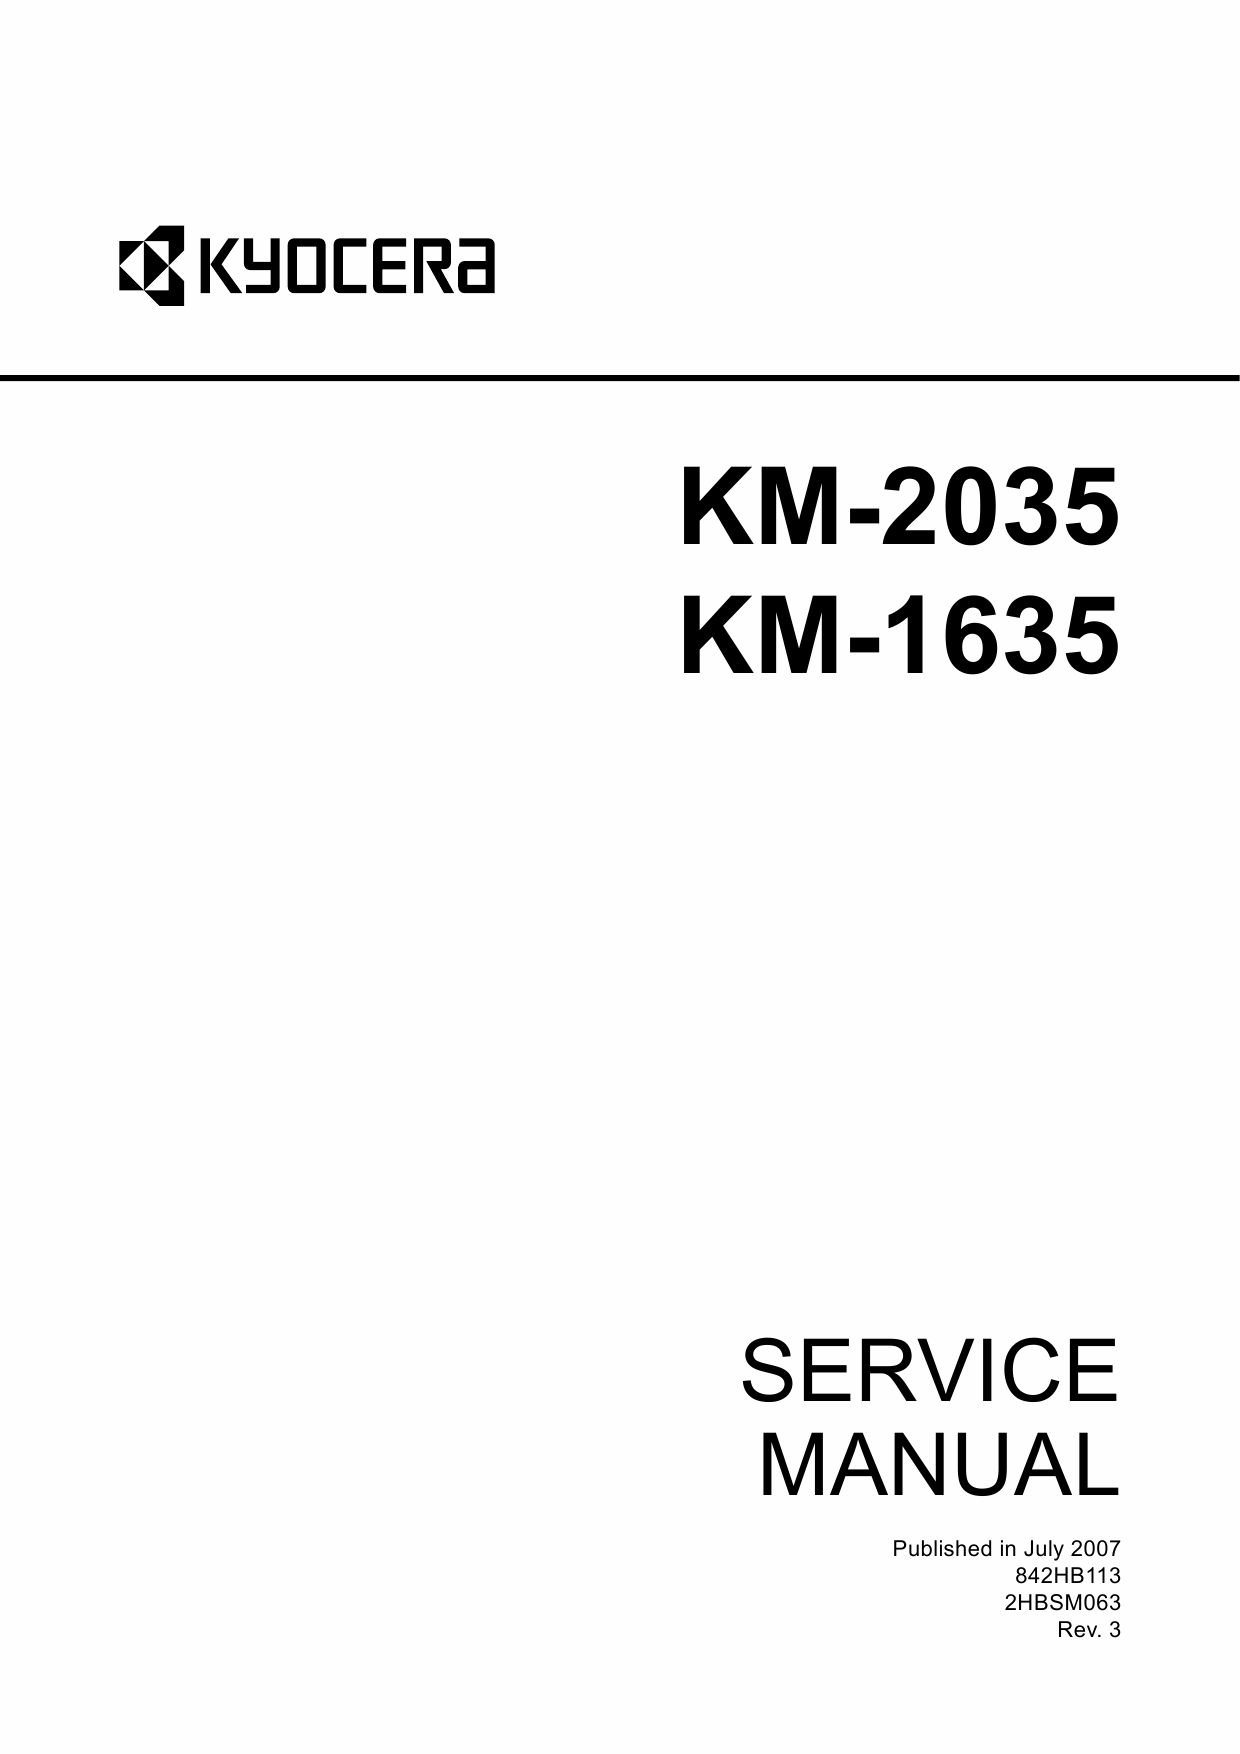 KYOCERA Copier KM-1635 2035 Service Manual-1